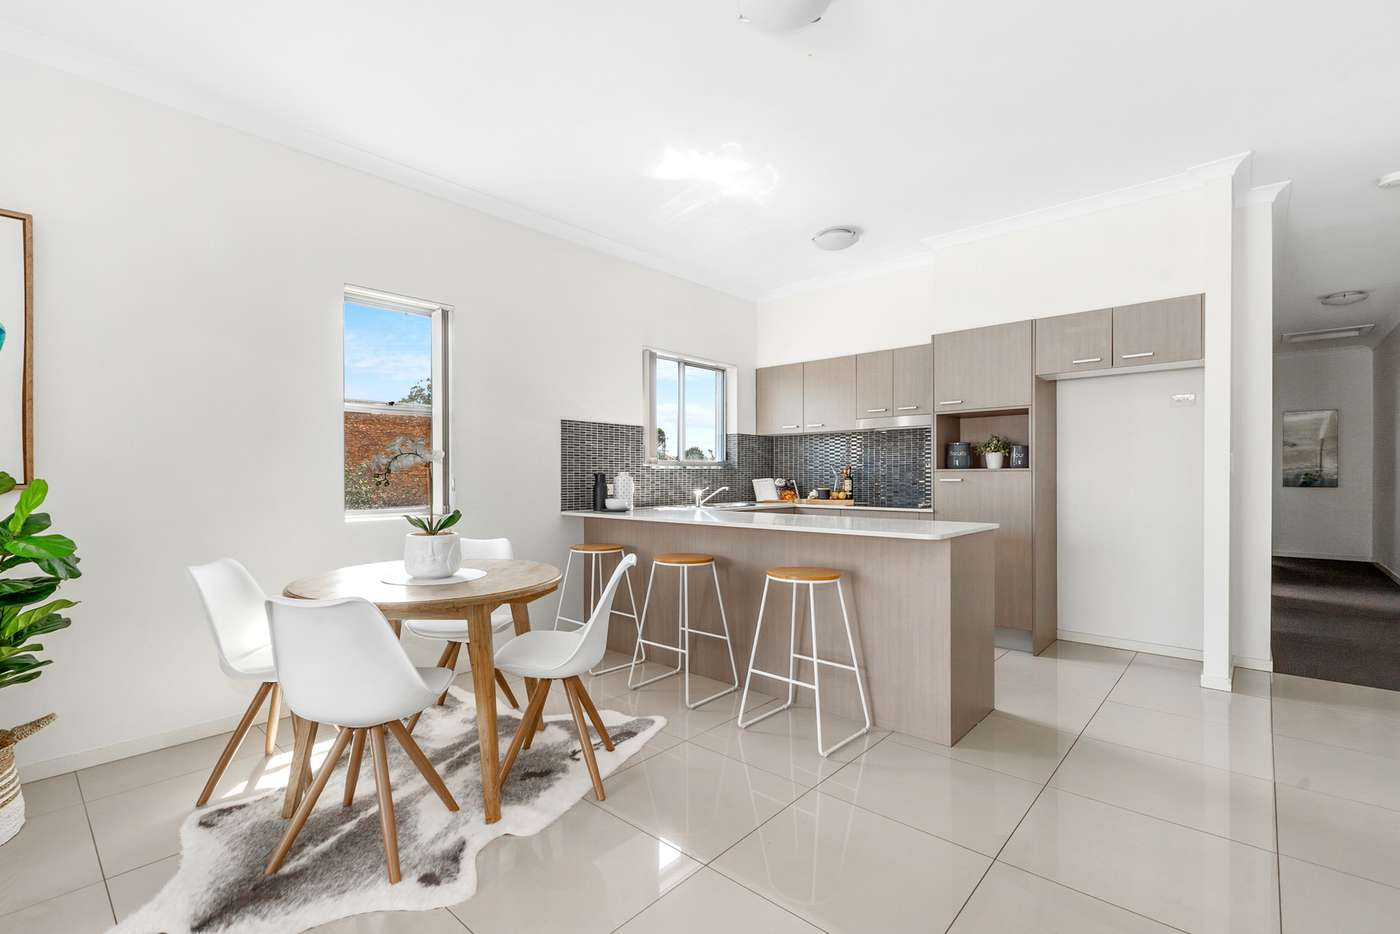 Fifth view of Homely apartment listing, 8/17 Donkin Street, Nundah QLD 4012